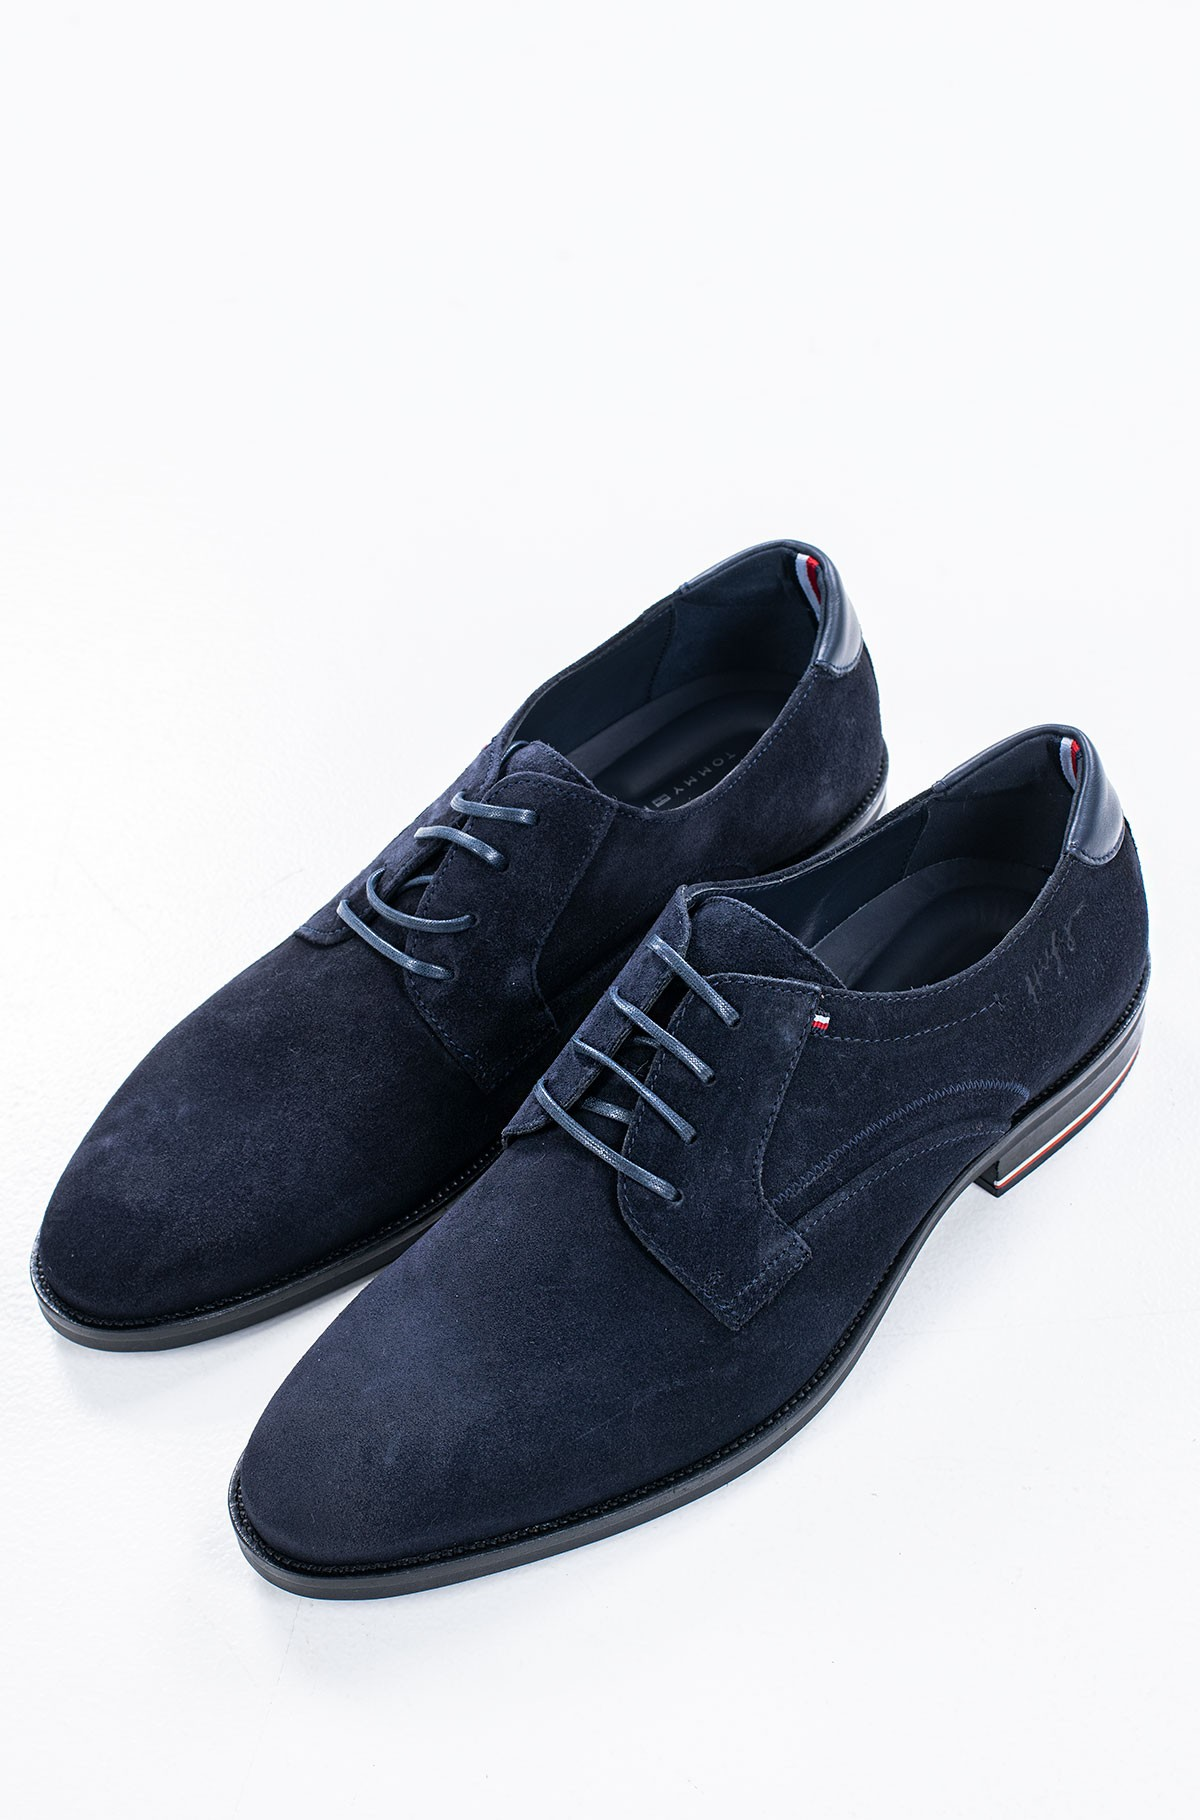 Shoes SIGNATURE HILFIGER SUEDE SHOE-full-1